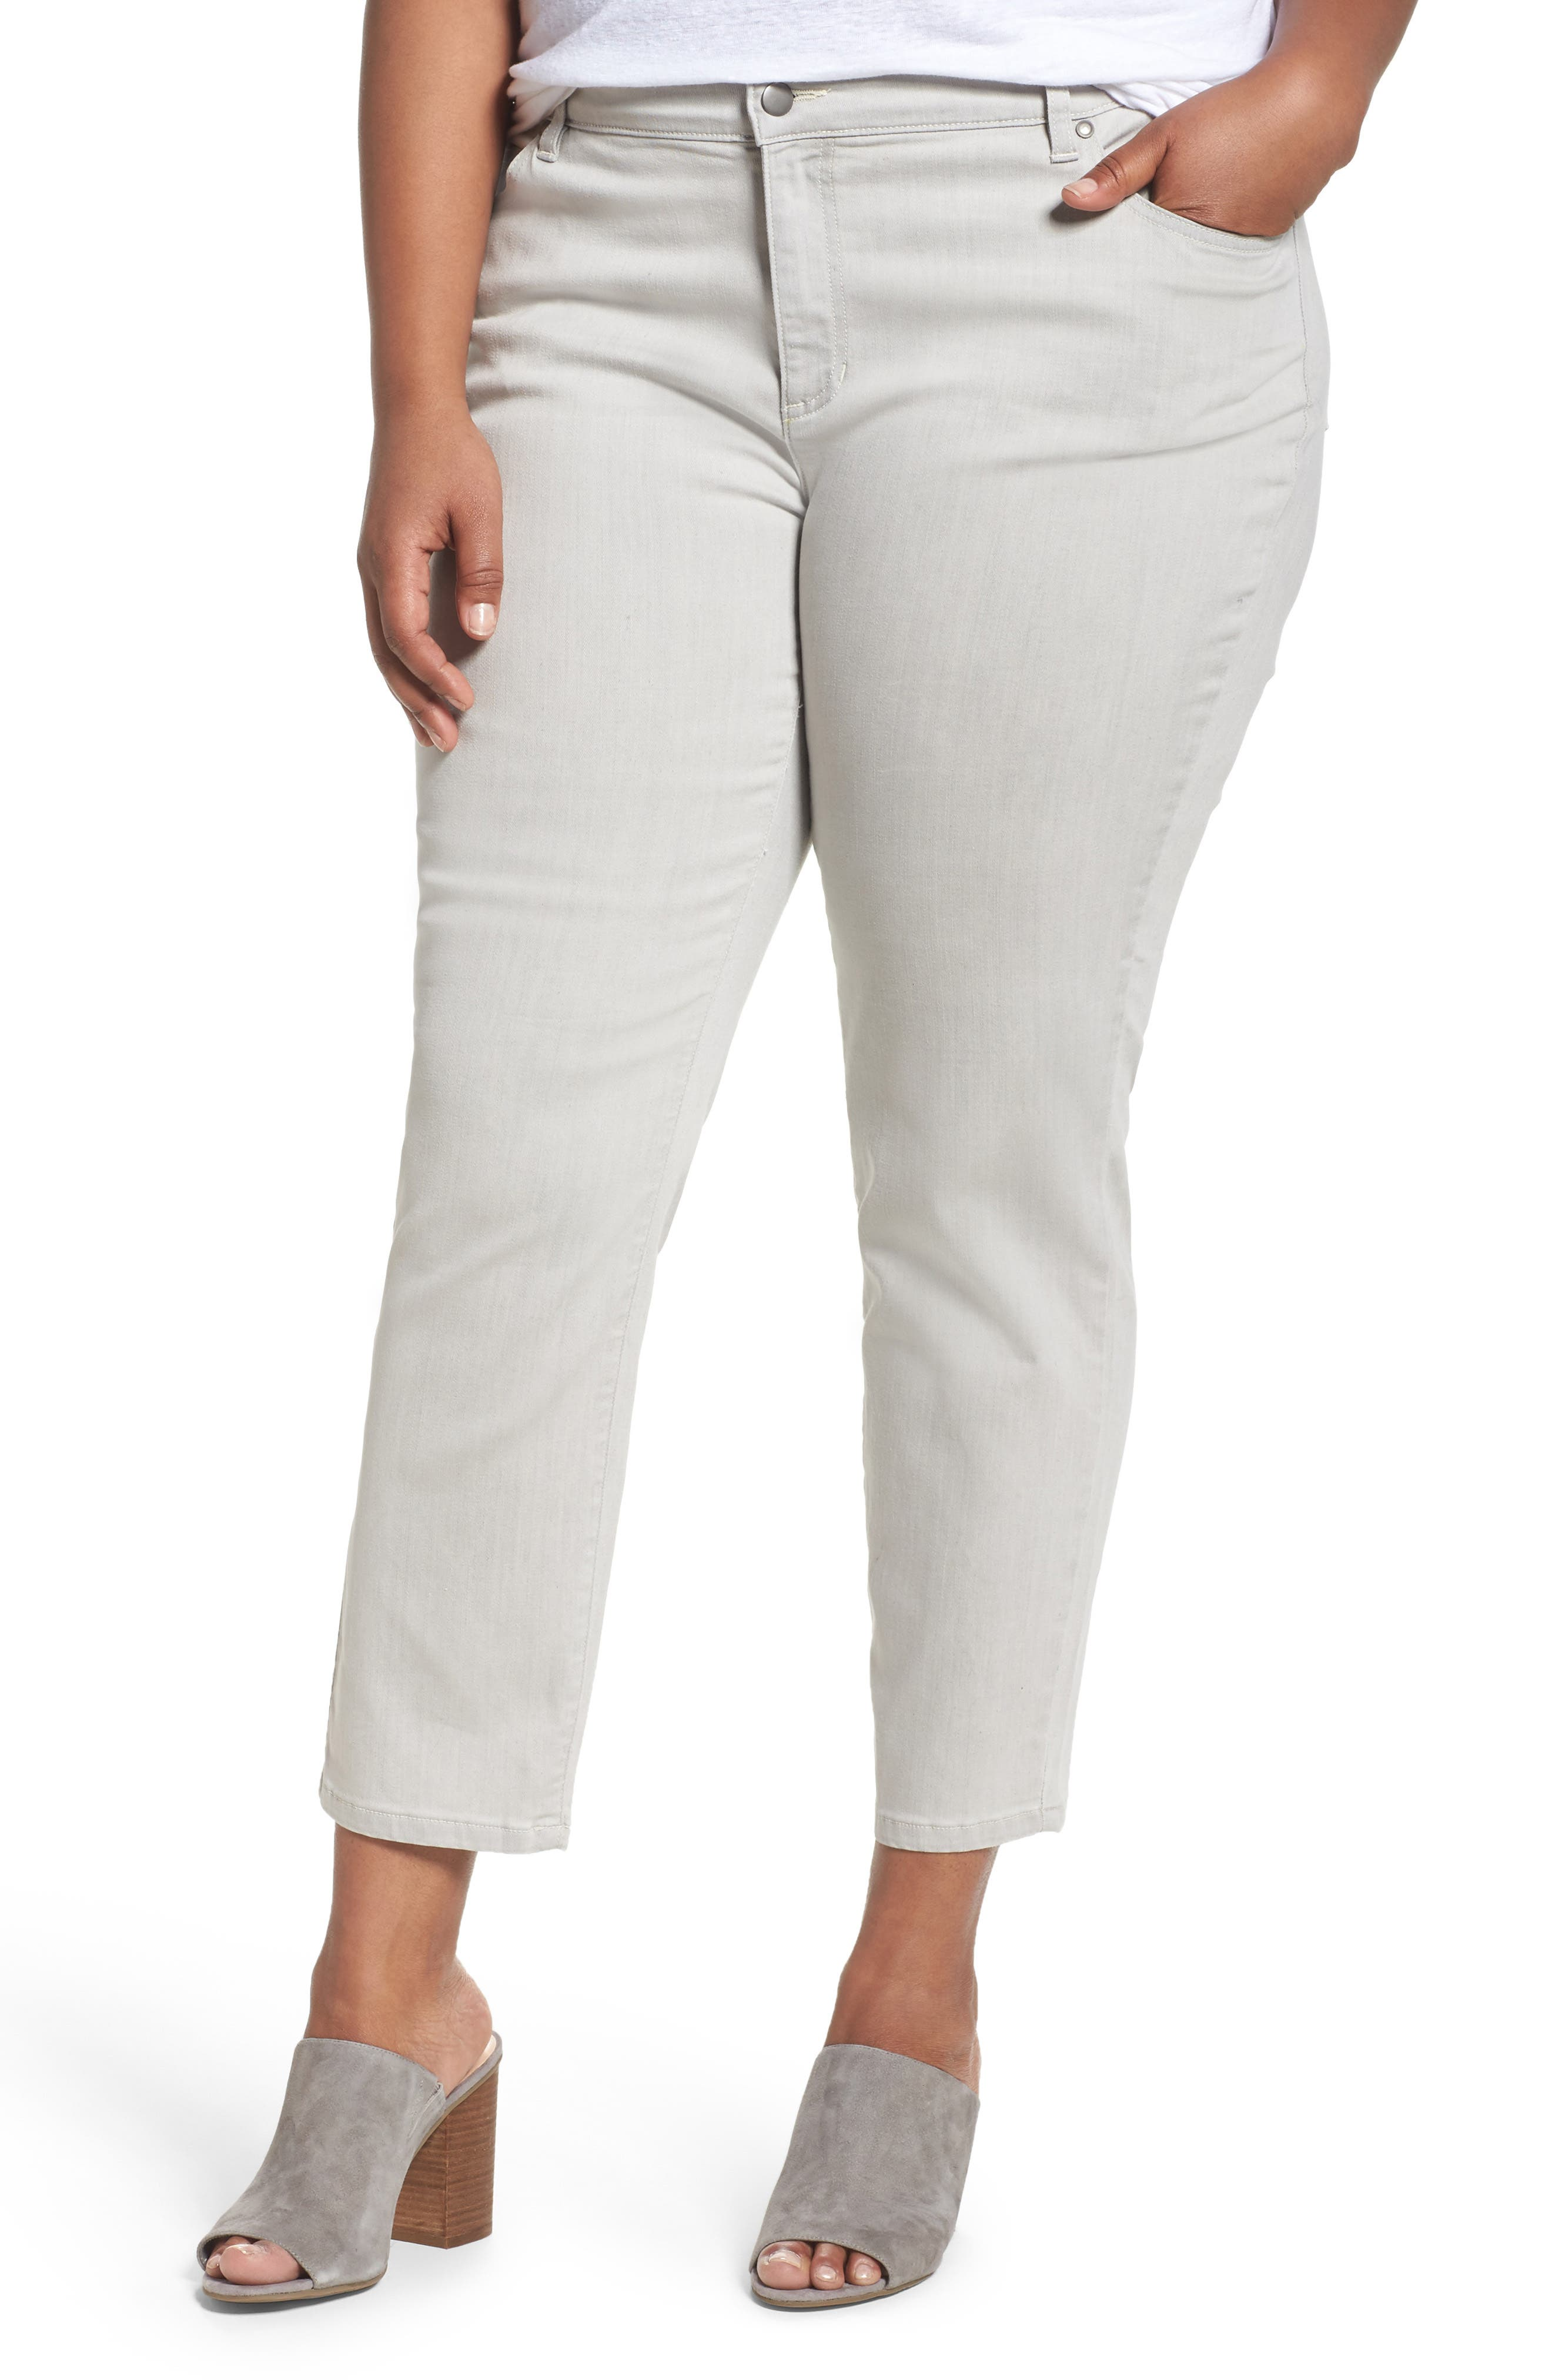 Eileen Fisher Organic Cotton Blend Skinny Jeans (Plus Size)